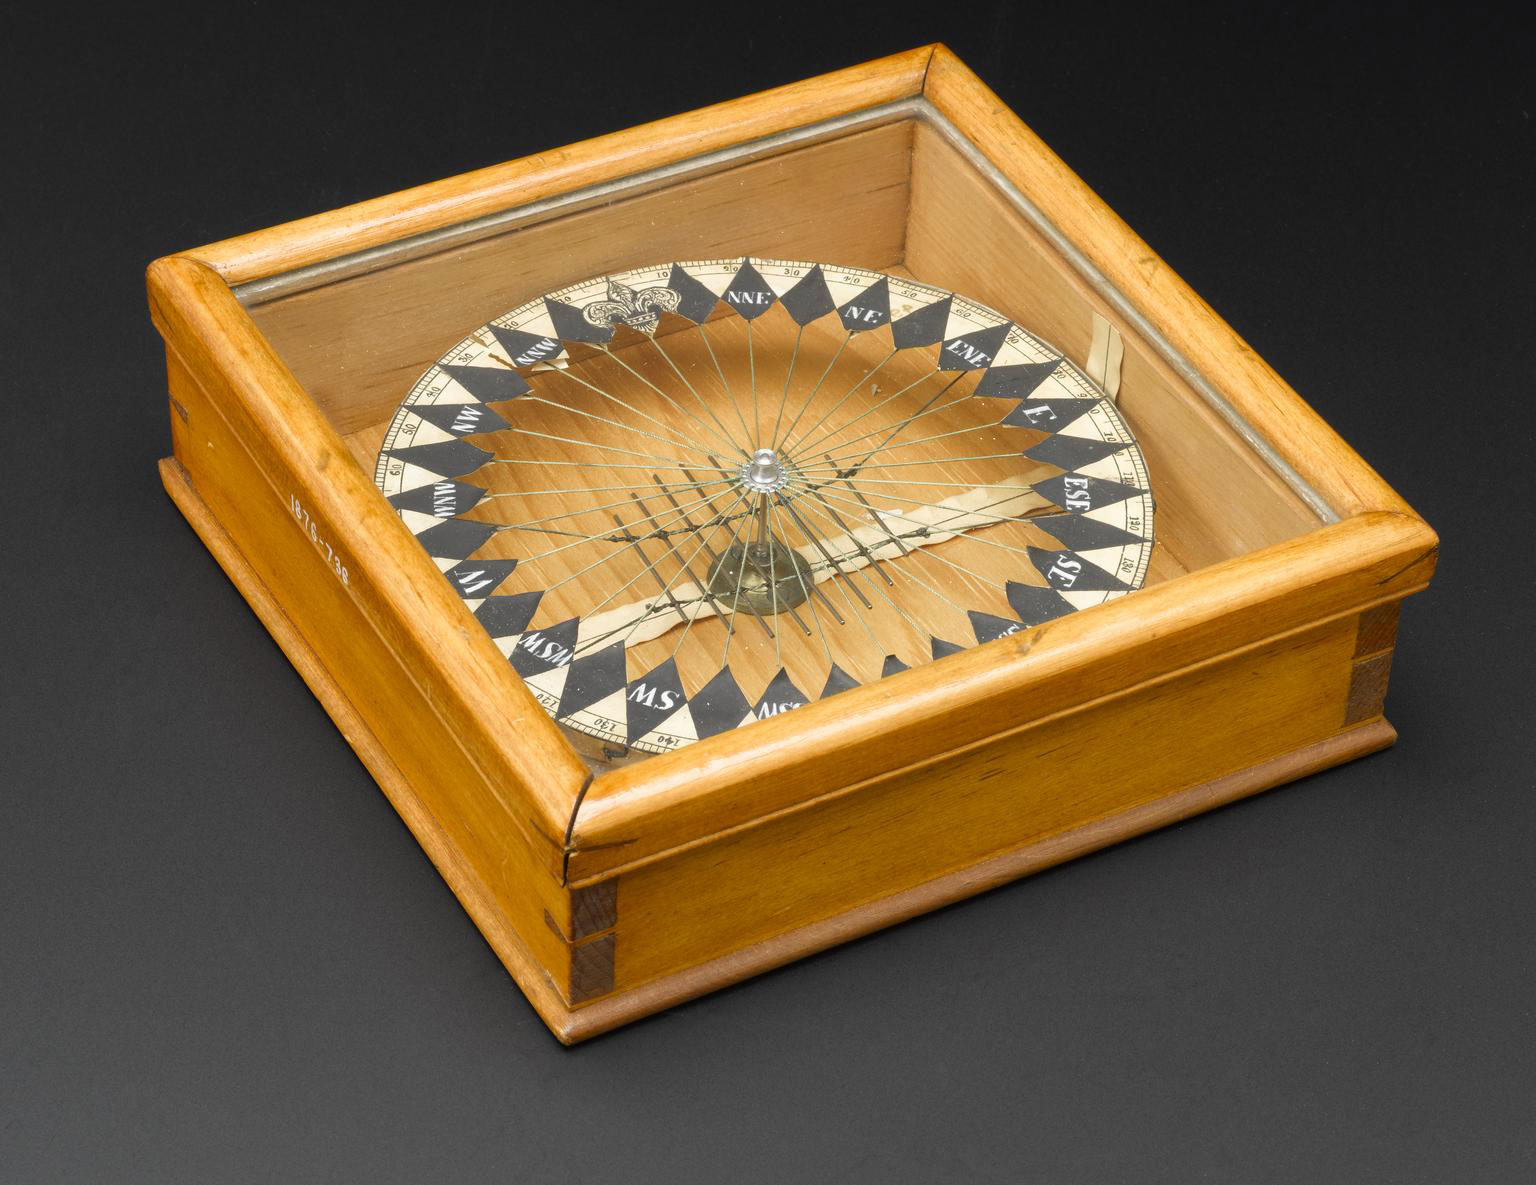 photograph of wooden box with glass lid containing compass-like instrument